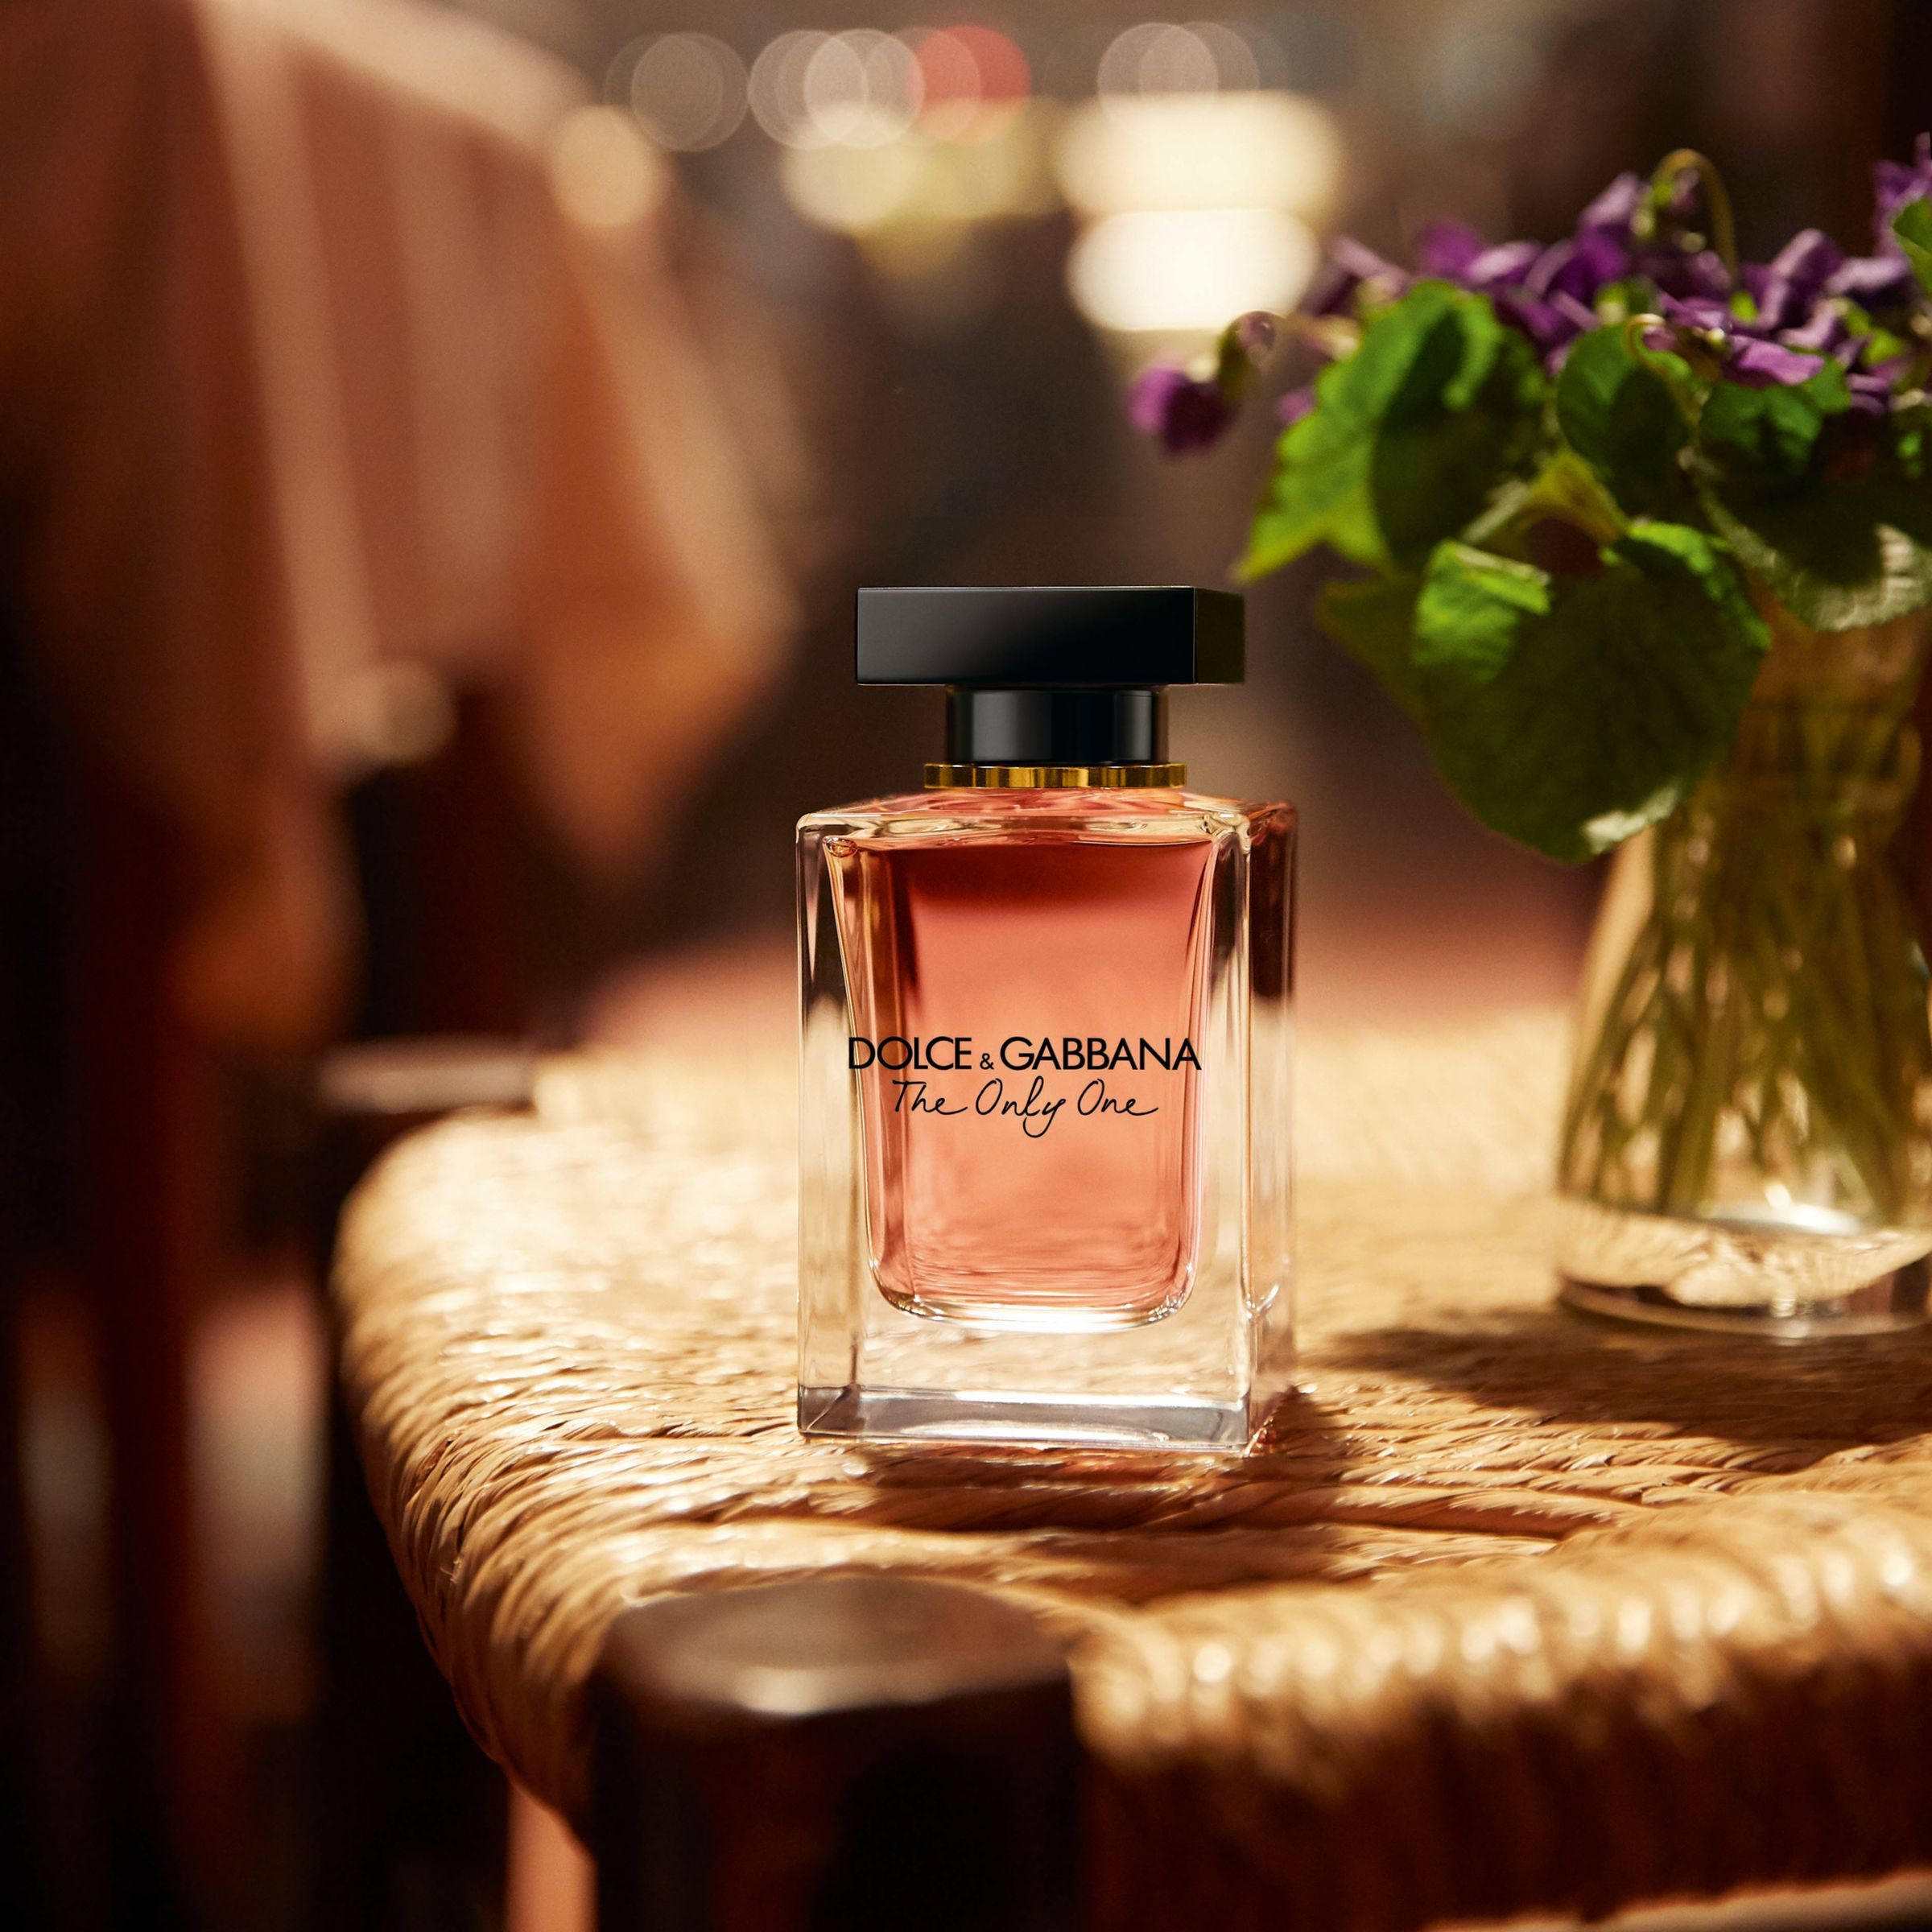 Dolce Gabbana The Only One Eau De Parfum In 2020 Perfume Store First Perfume Perfume